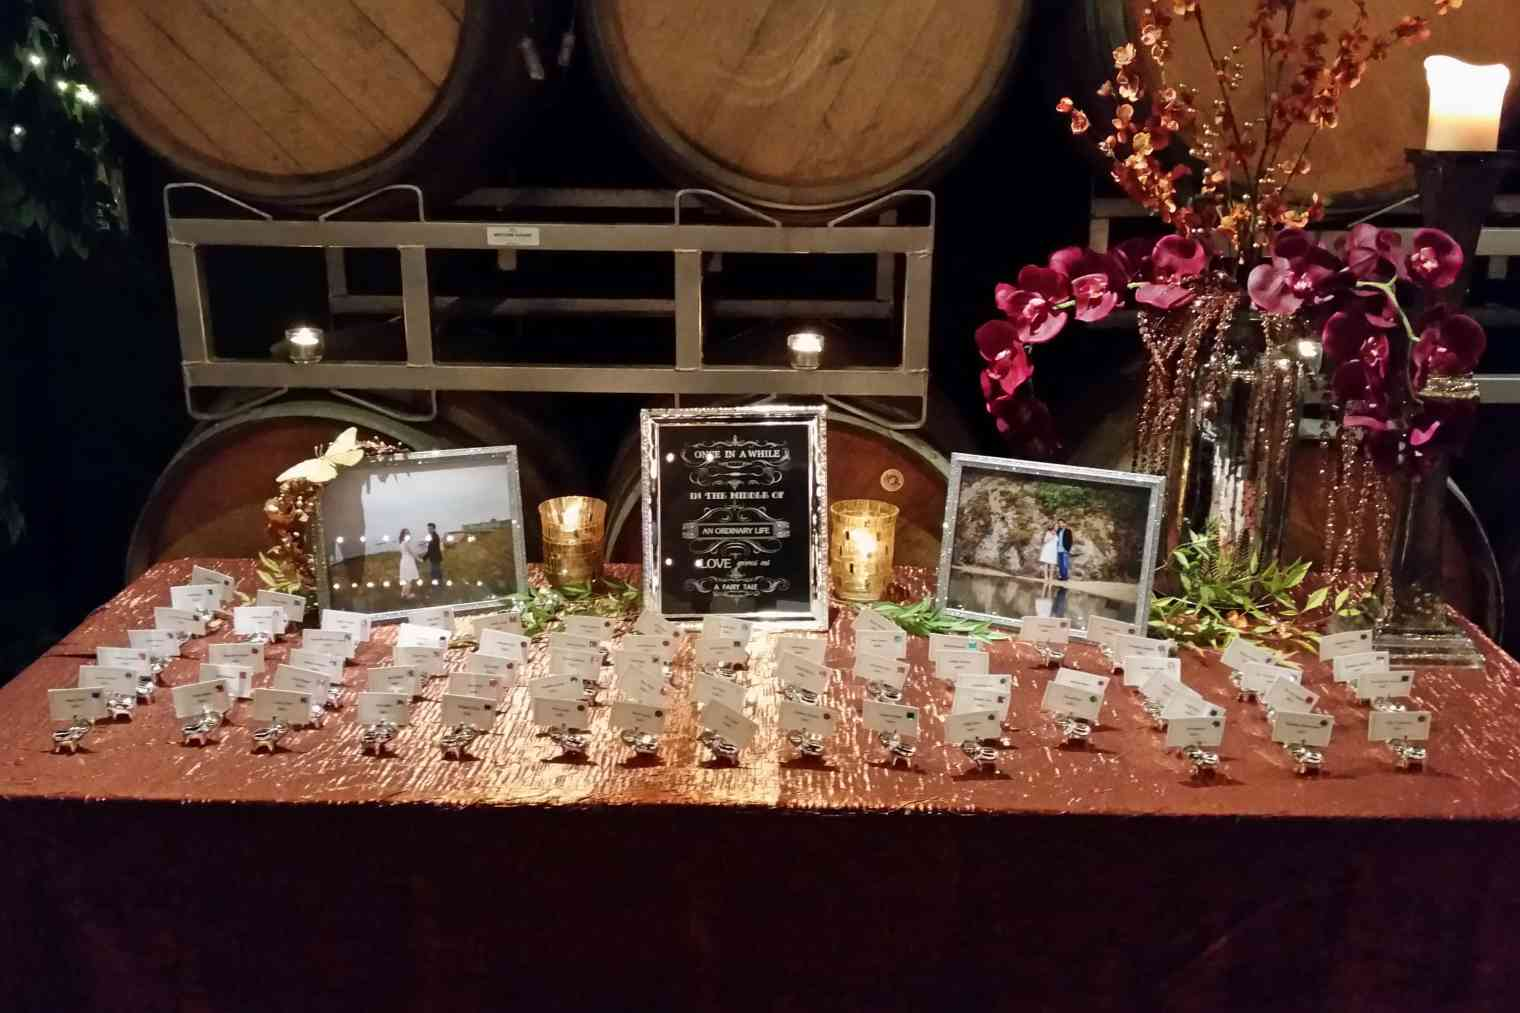 Table arrangements by Mary K. Mitchell